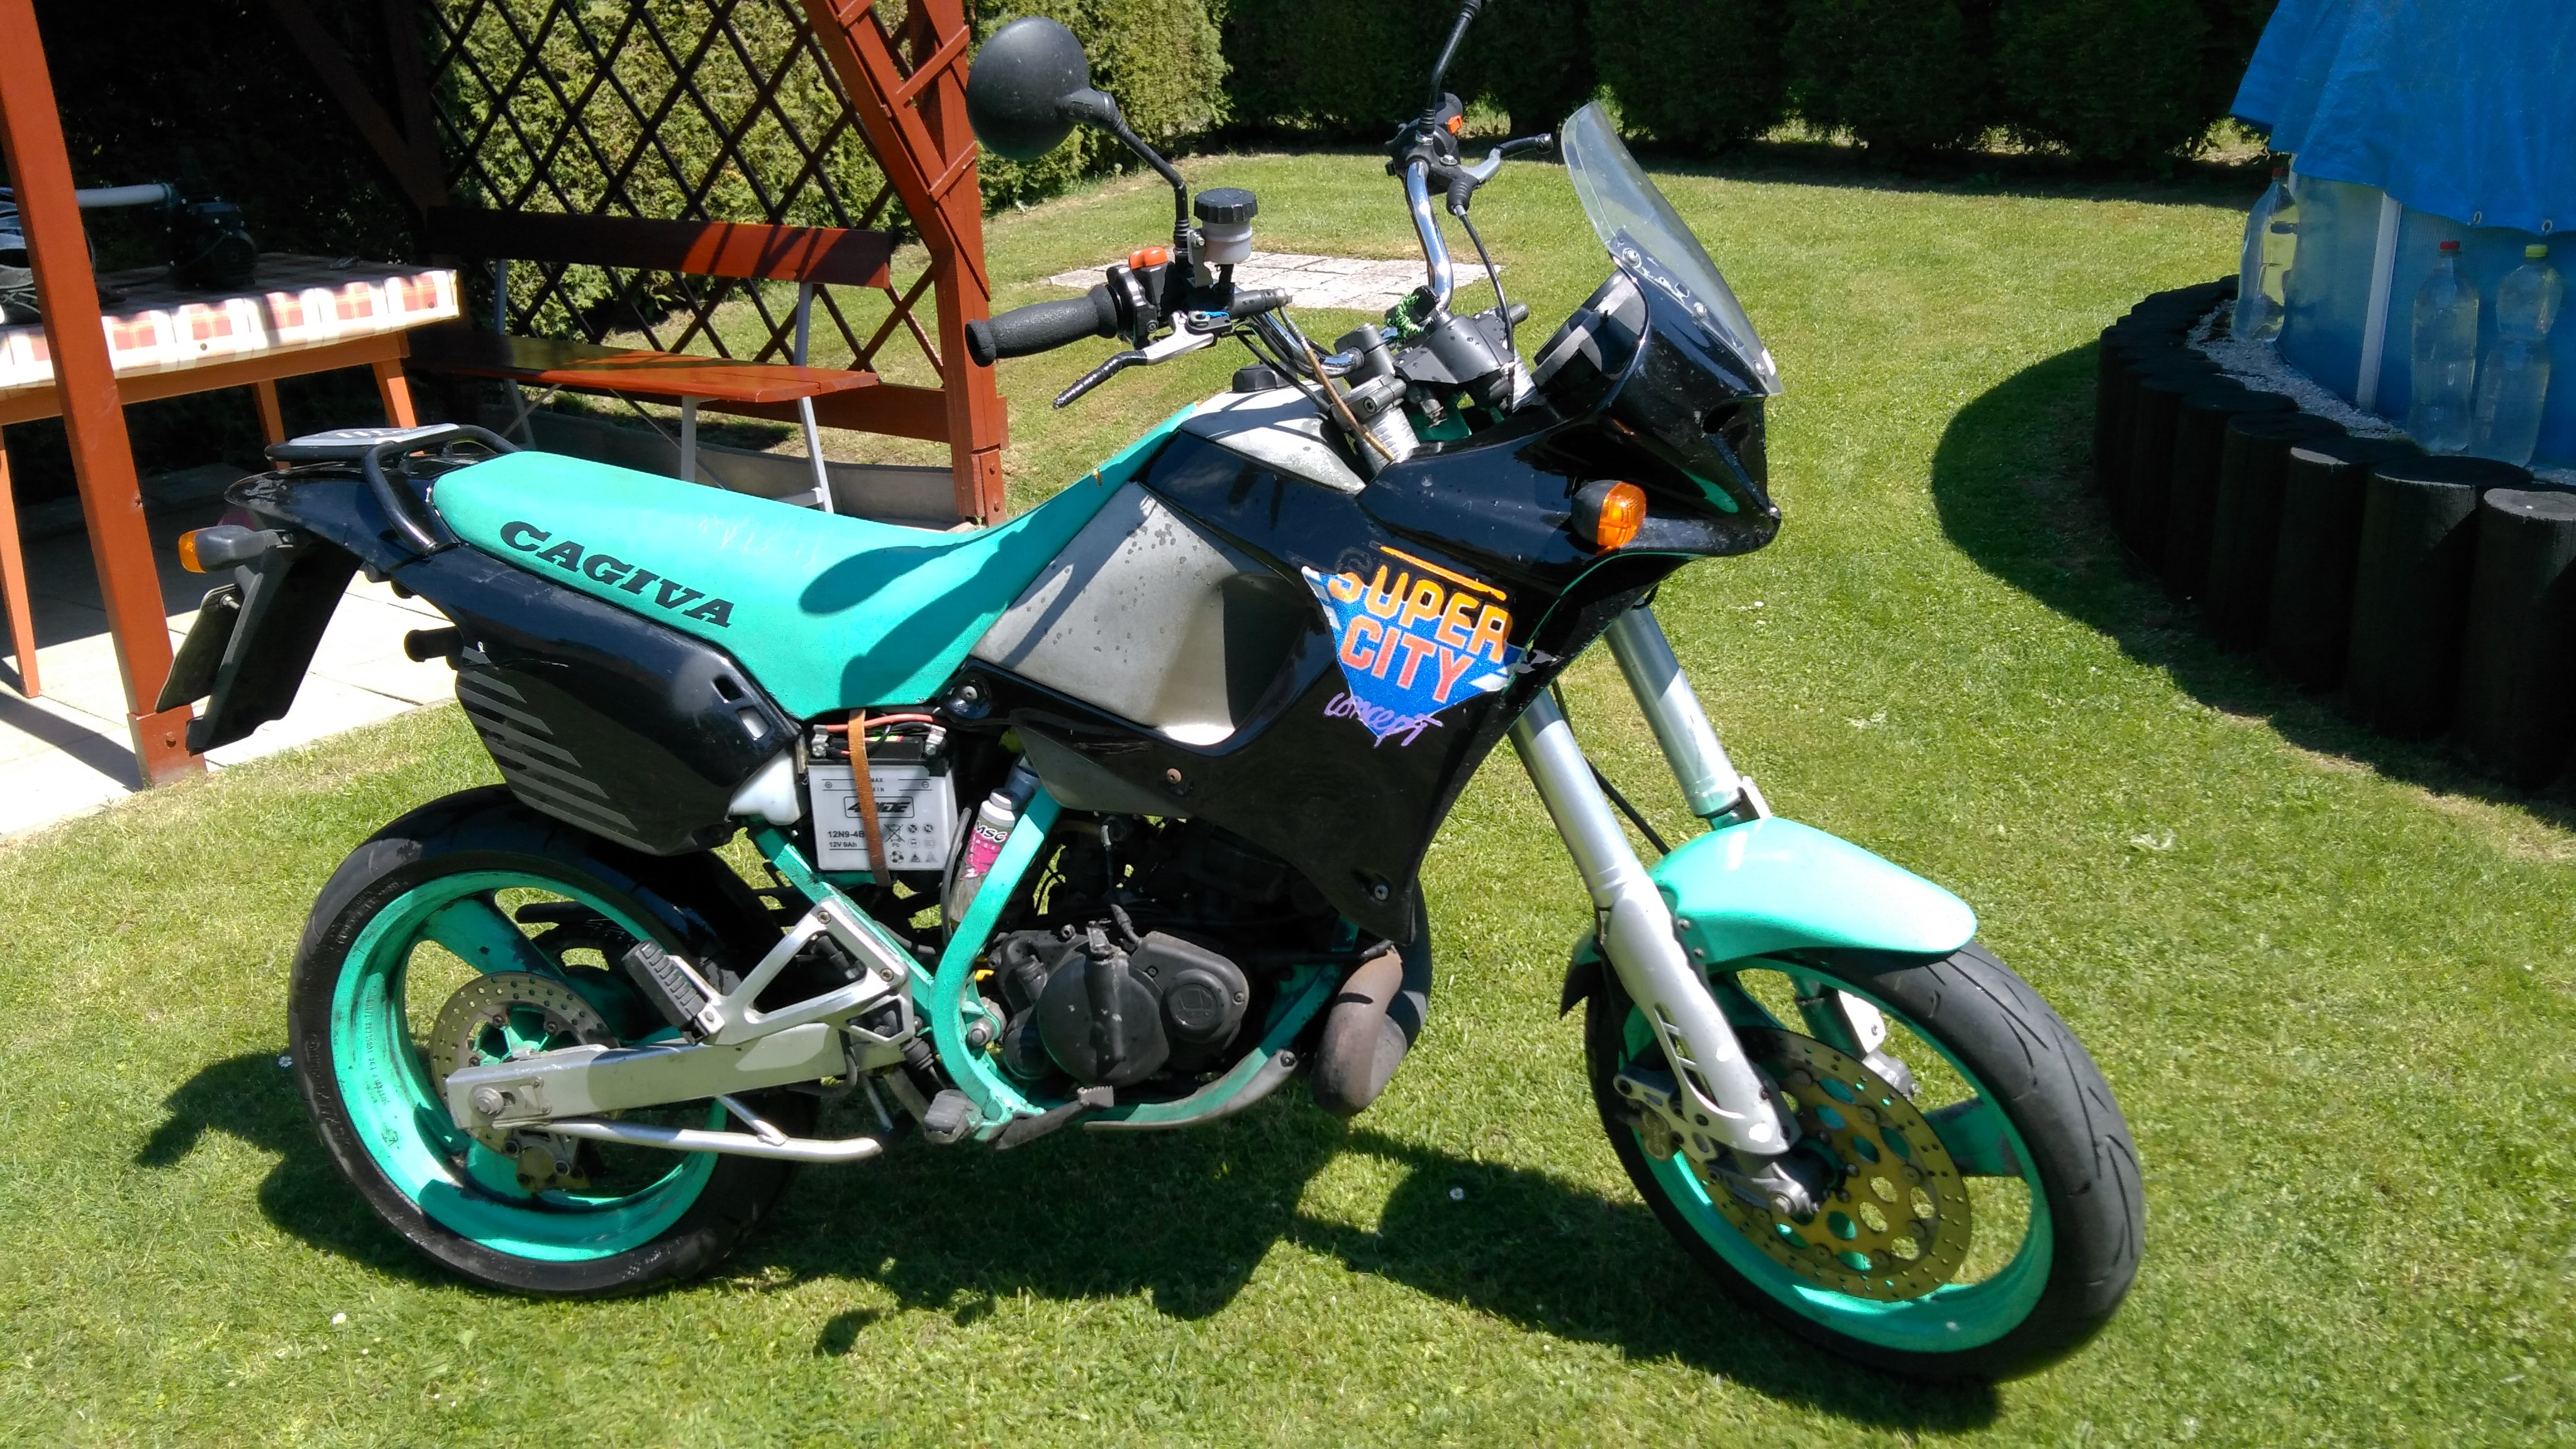 Cagiva Super City 125 1997 images #67232